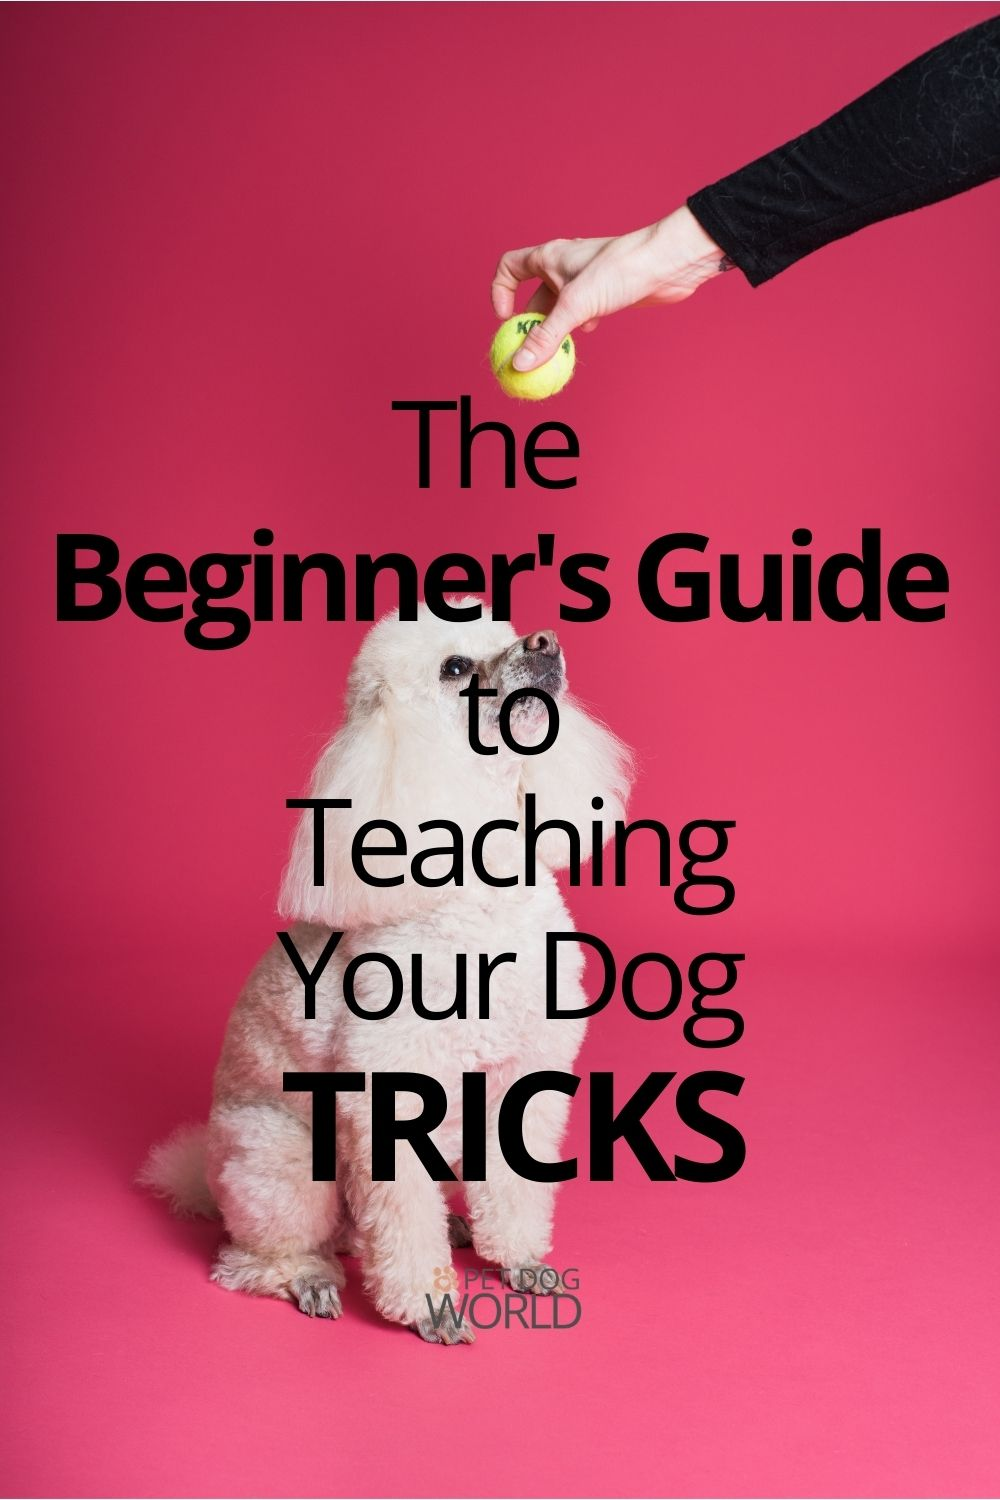 The Beginner's Guide to Teaching Your Dog Tricks